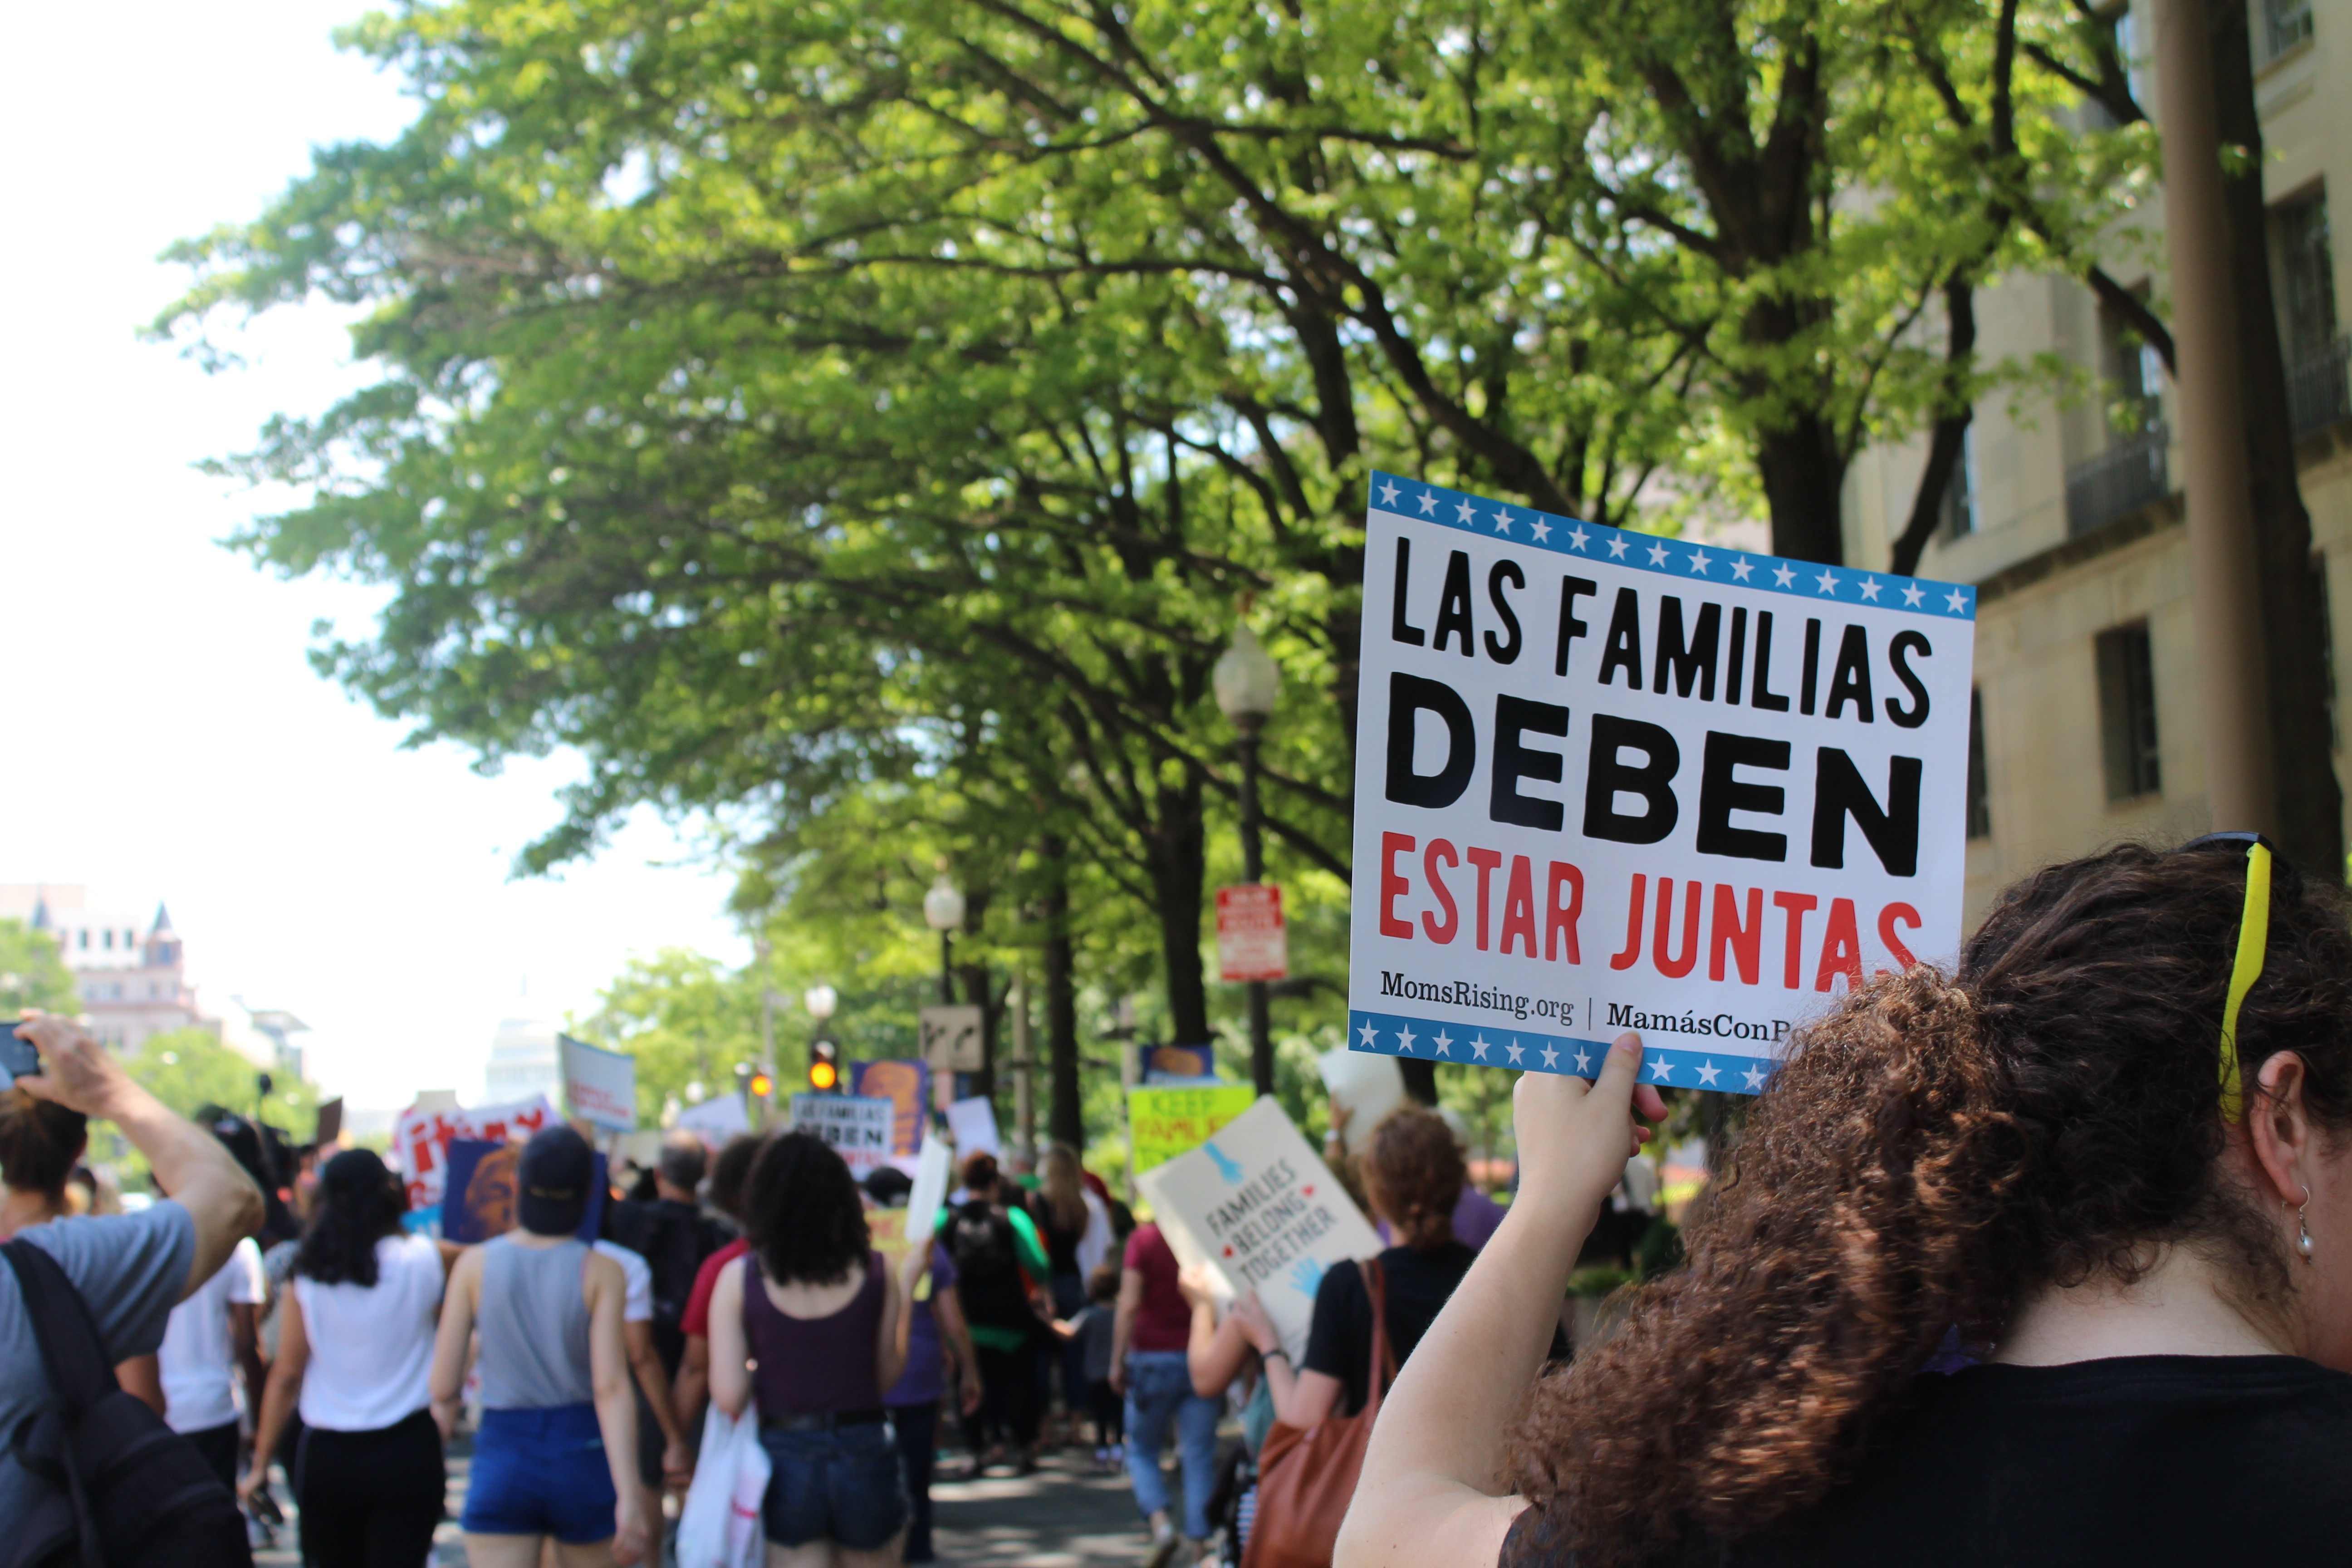 Families Belong Together sign (in spanish)